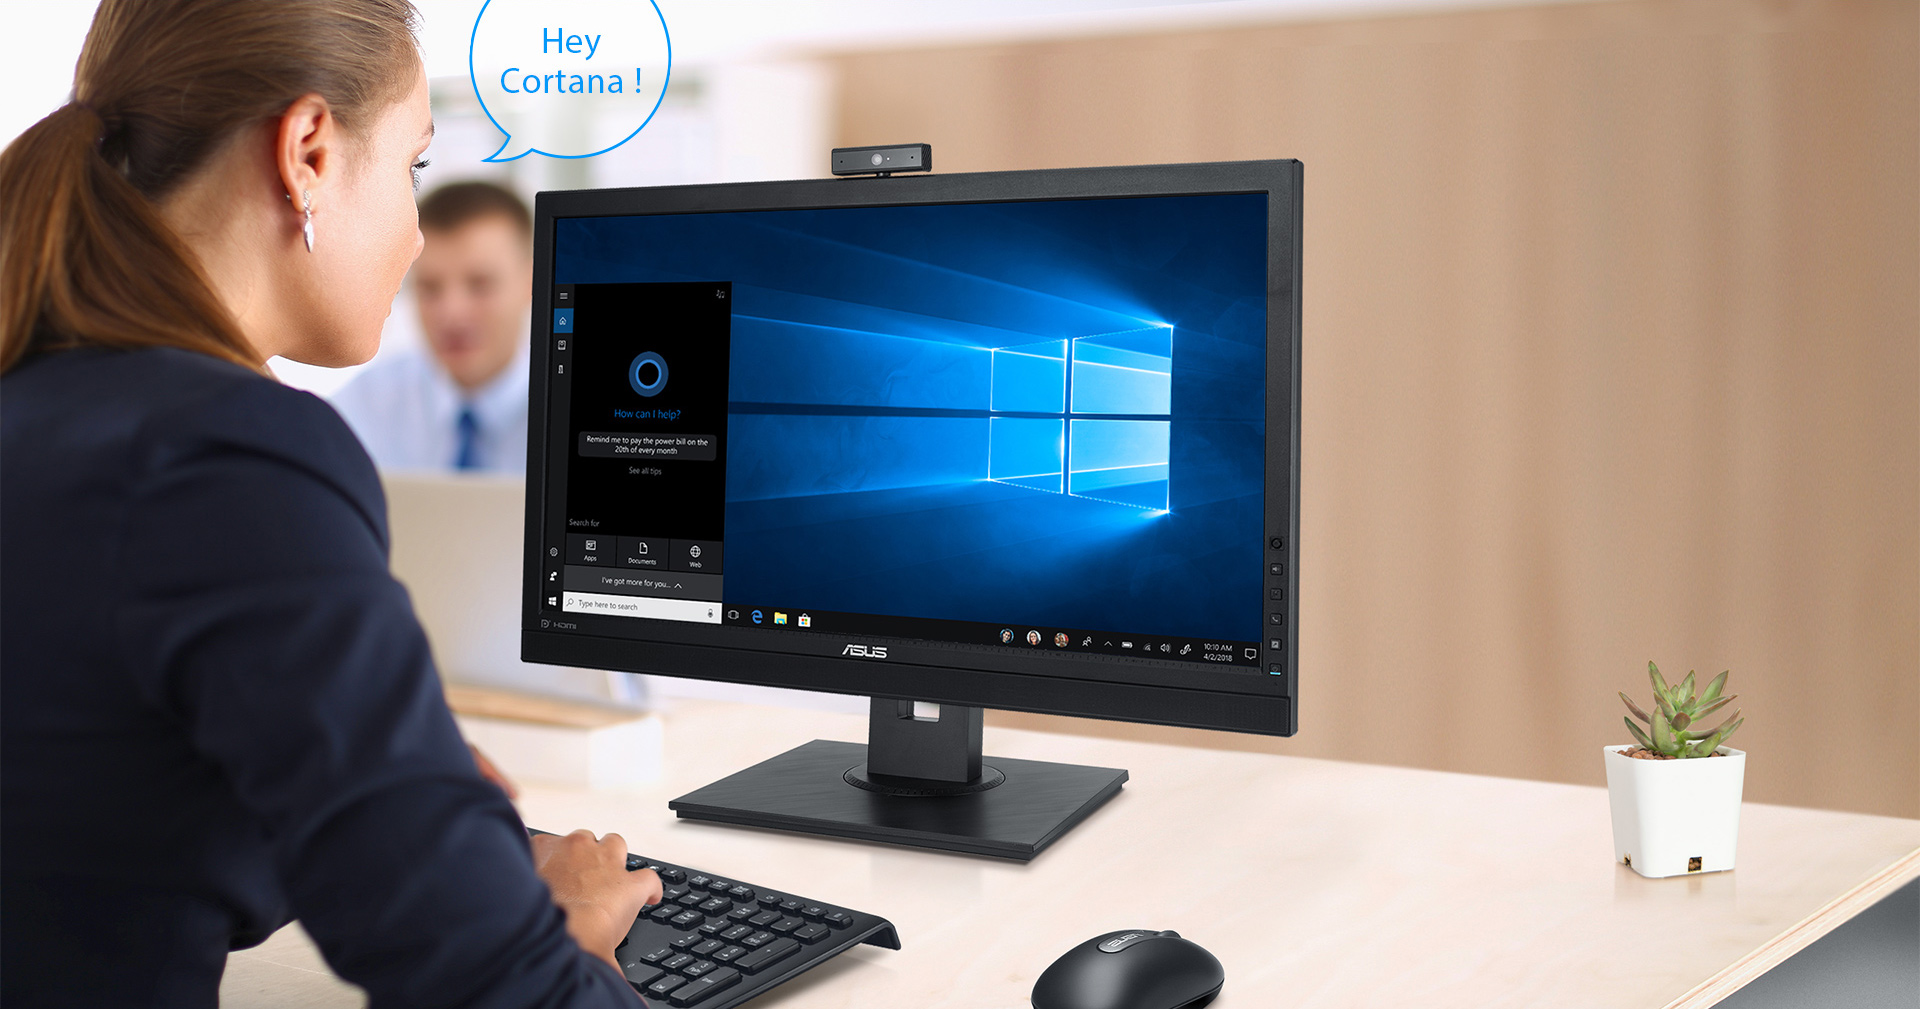 BE24DQLB's beam-forming microphone array separates speech from background noise, so it's perfect for use with Cortana, the Windows 10 smart assistant.